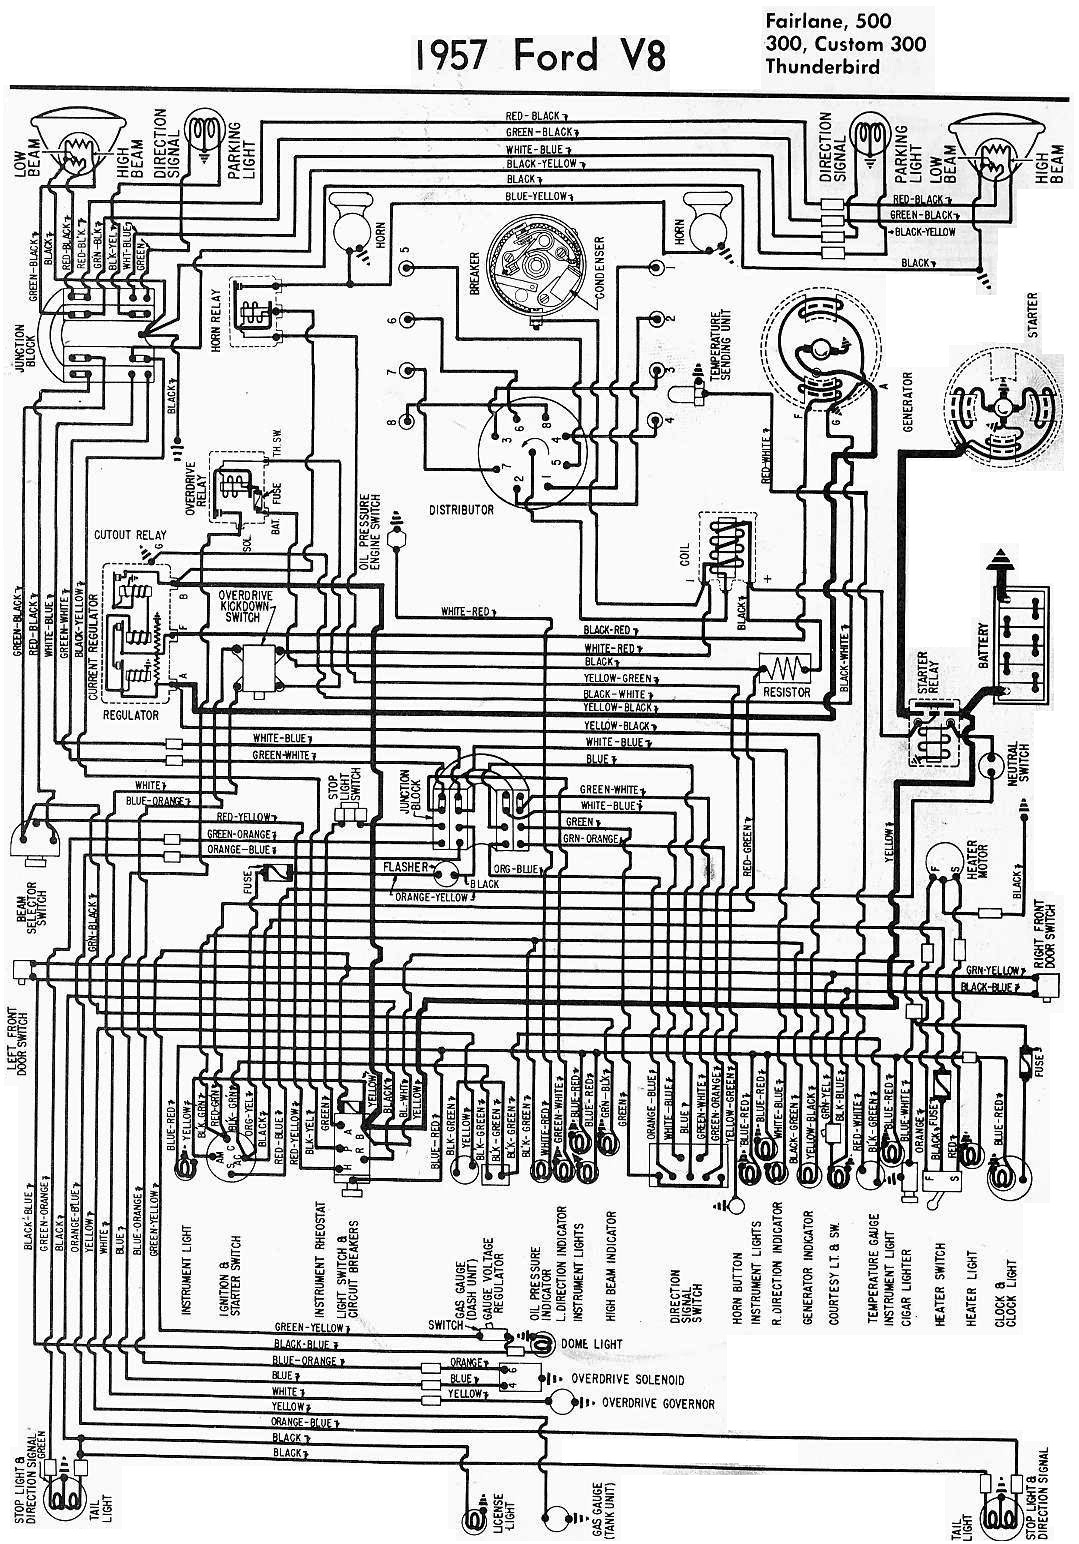 Electrical Wiring Diagrams Ibanez Support June 2011 All About